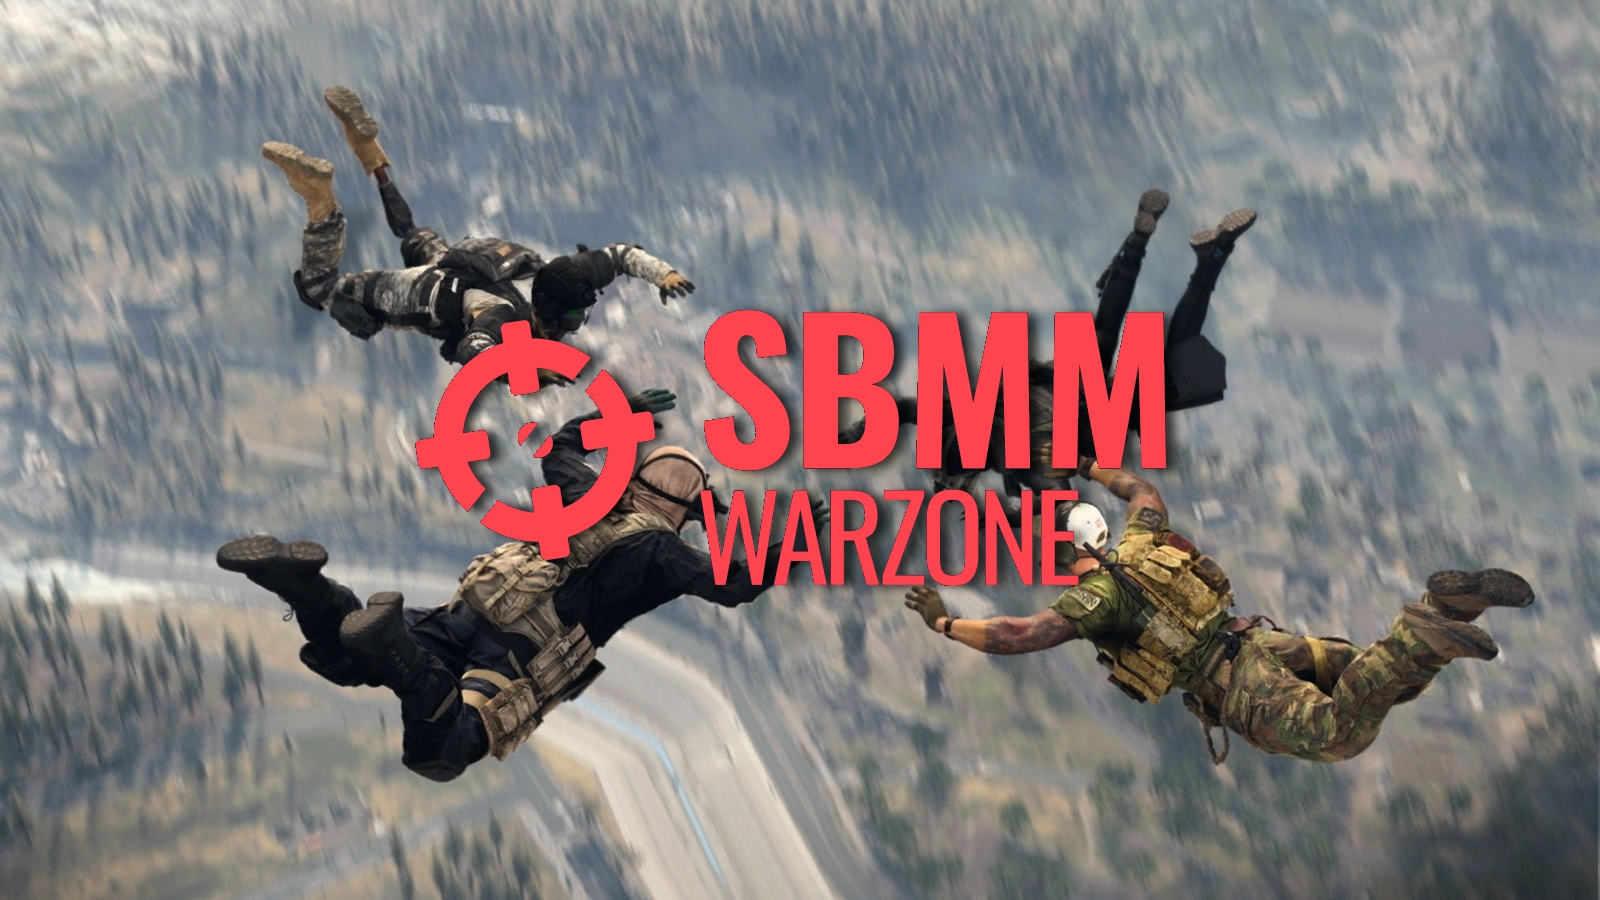 SBMM Warzone with players in-game